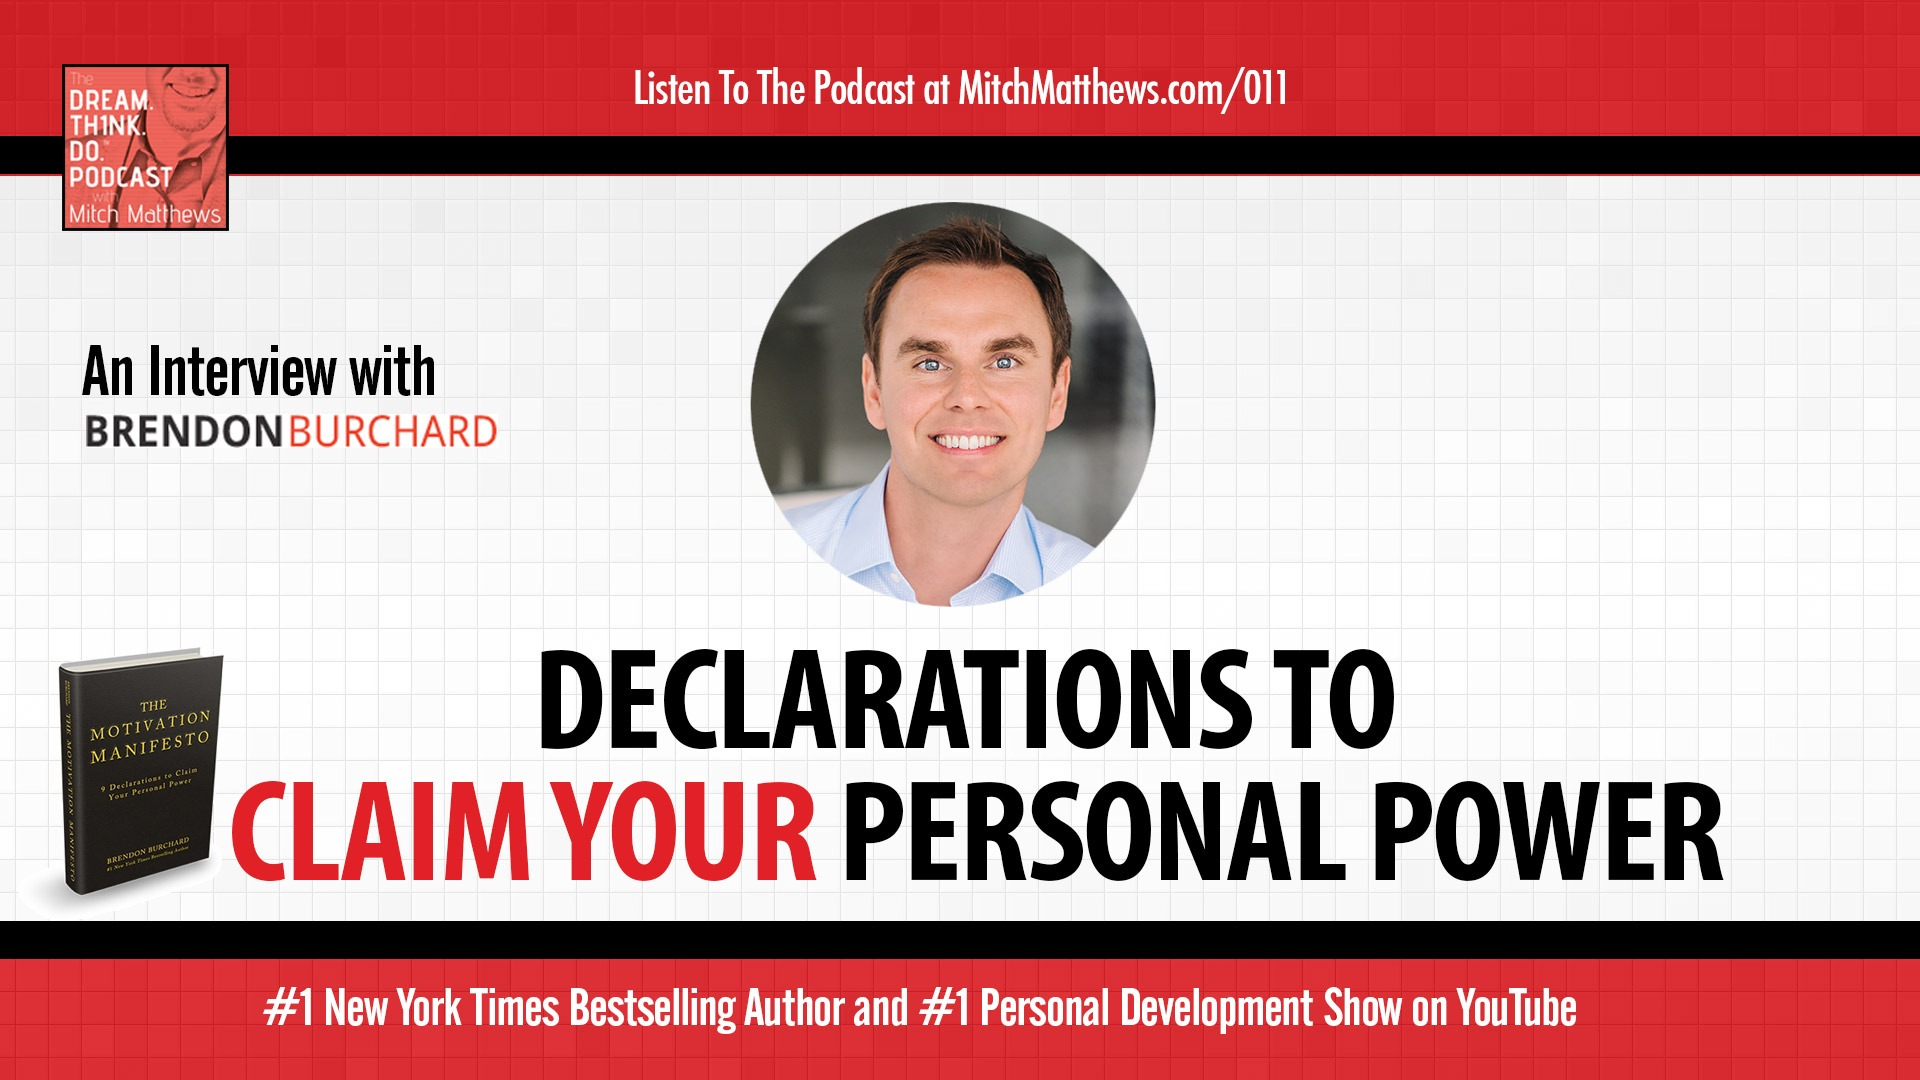 Declarations-to-Claim-Your-Personal-Power-An-Interview-with-Brendon-Burchard